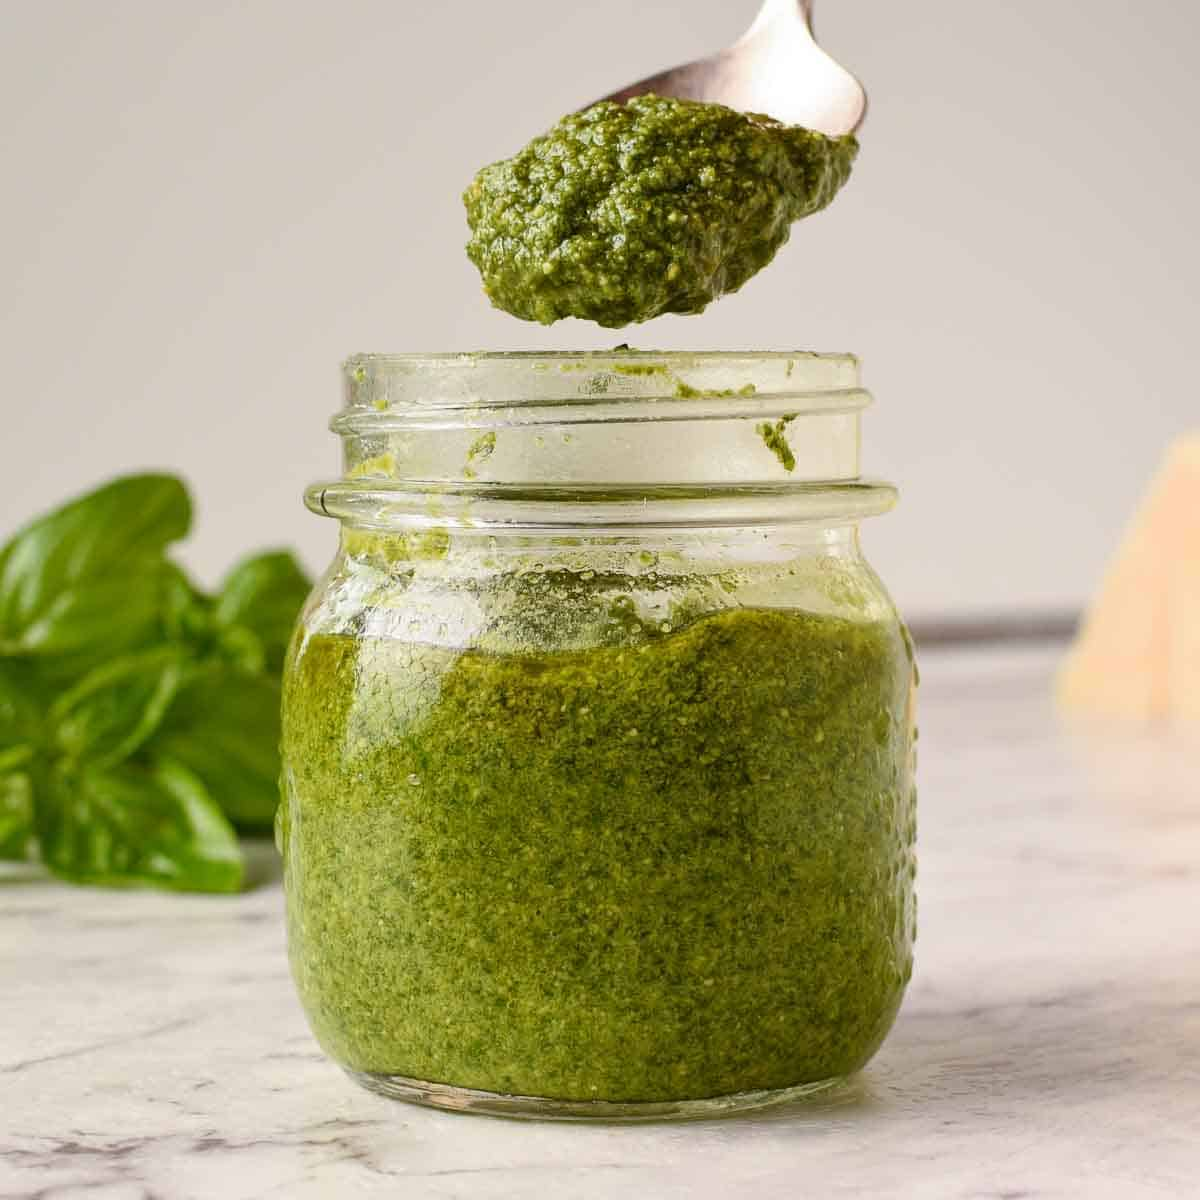 glass jar of basil pesto with a spoonful being spooned out, fresh basil in the background